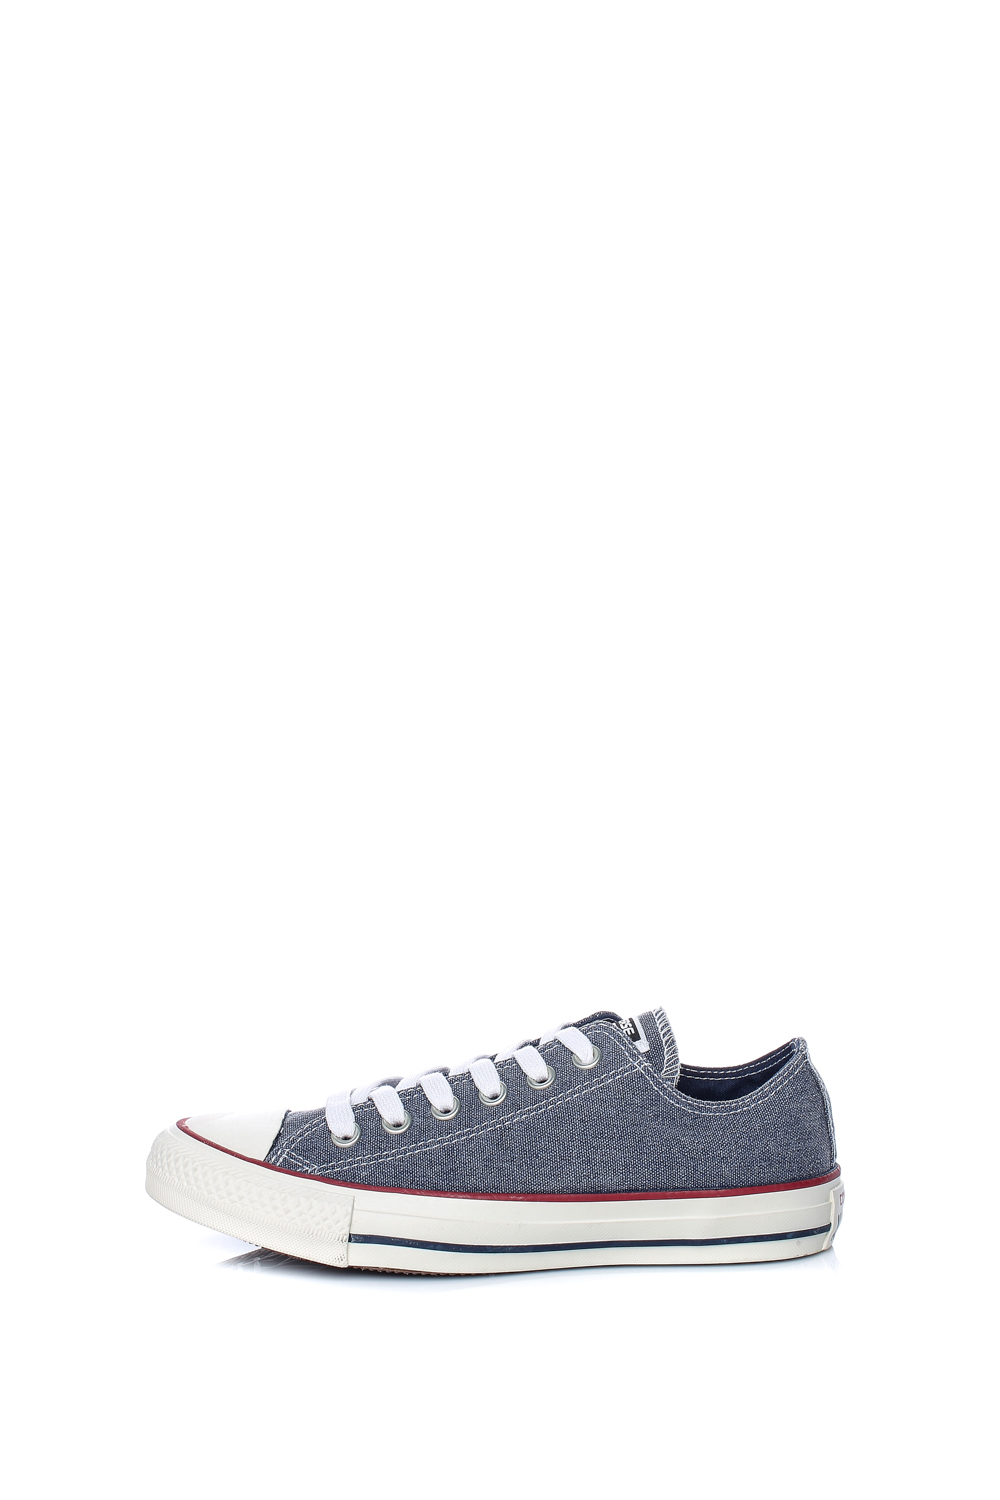 CONVERSE – Unisex παπούτσια Chuck Taylor All Star Ox ντένιμ